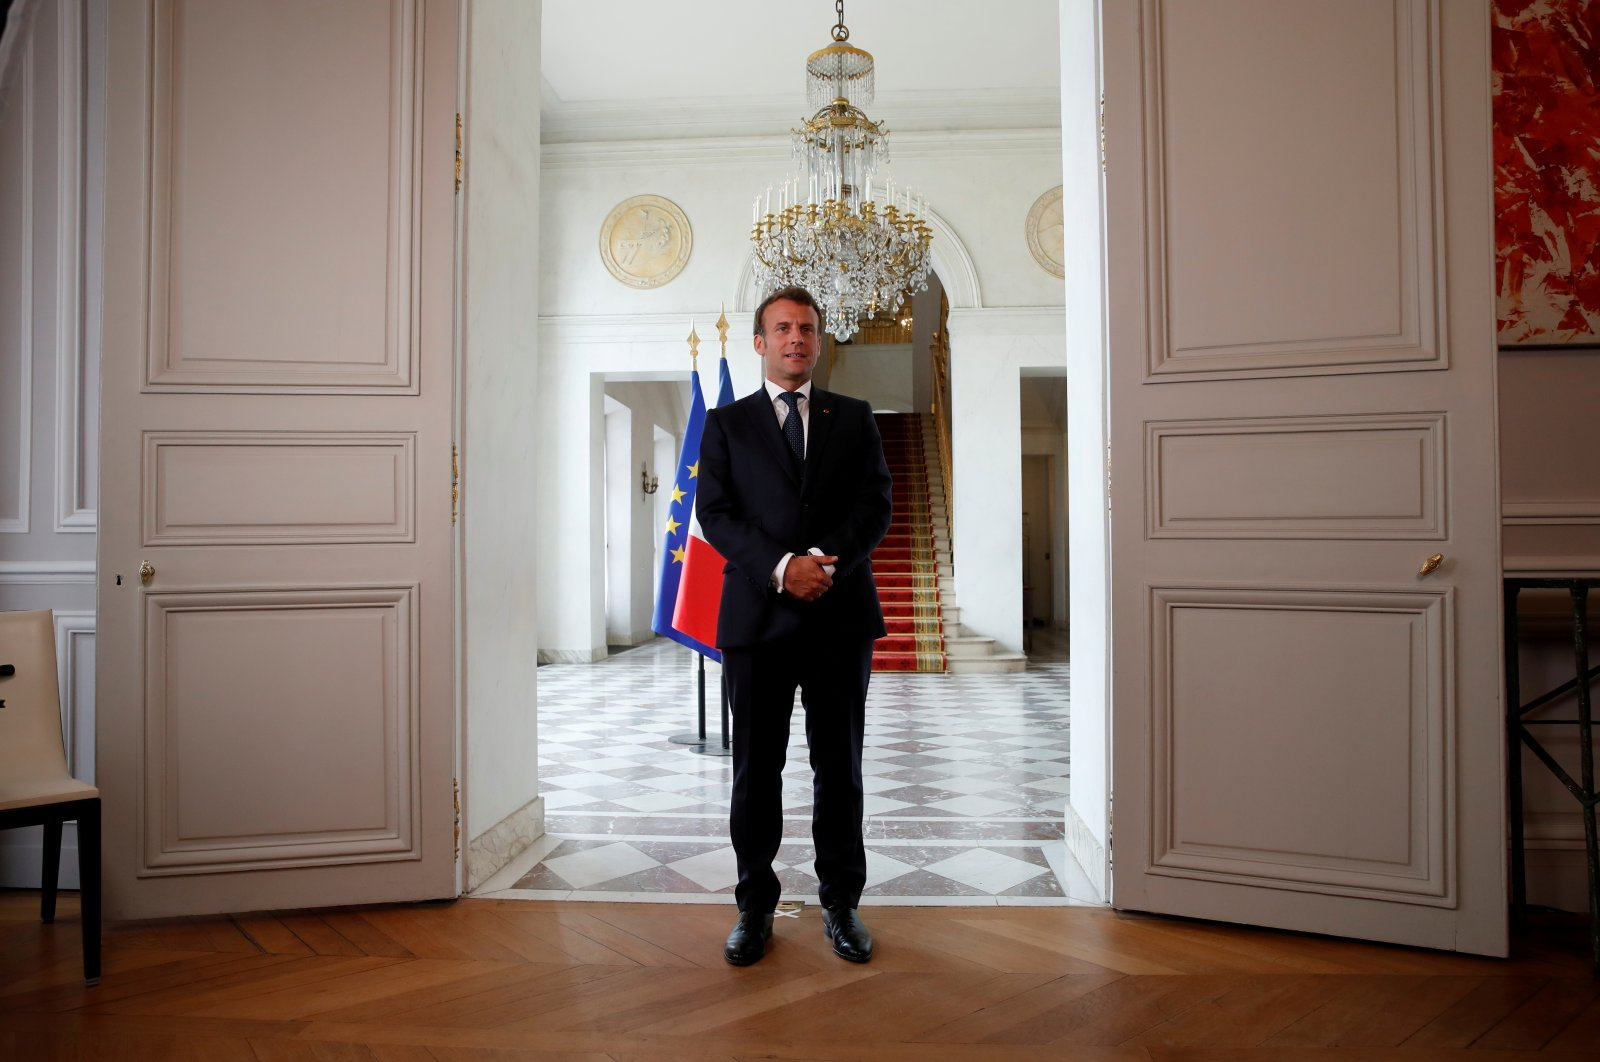 French President Emmanuel Macron arrives to deliver a statement after an international videoconference on vaccination at the Elysee Palace in Paris during the outbreak of the coronavirus disease in France, May 4, 2020. (Reuters Photo)